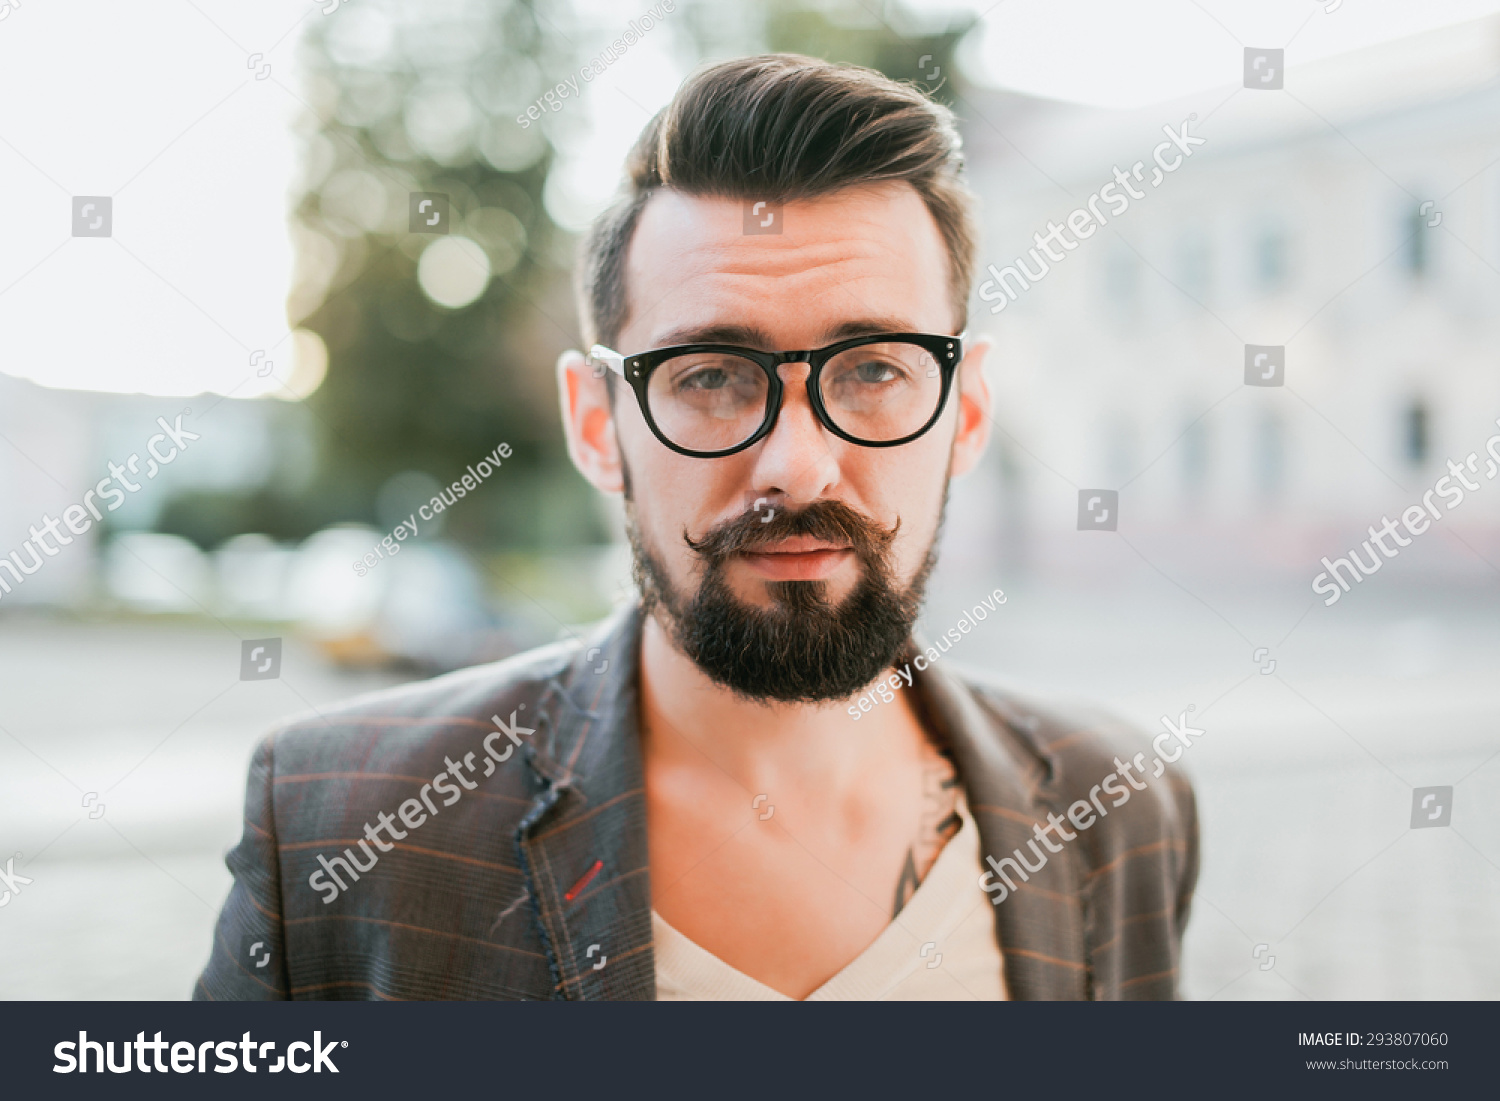 young guy with a beard and mustache with glasses in a suit posing on the street in the sunlight fashion man style vintage style retro men handsome beard outdoor portrait close up